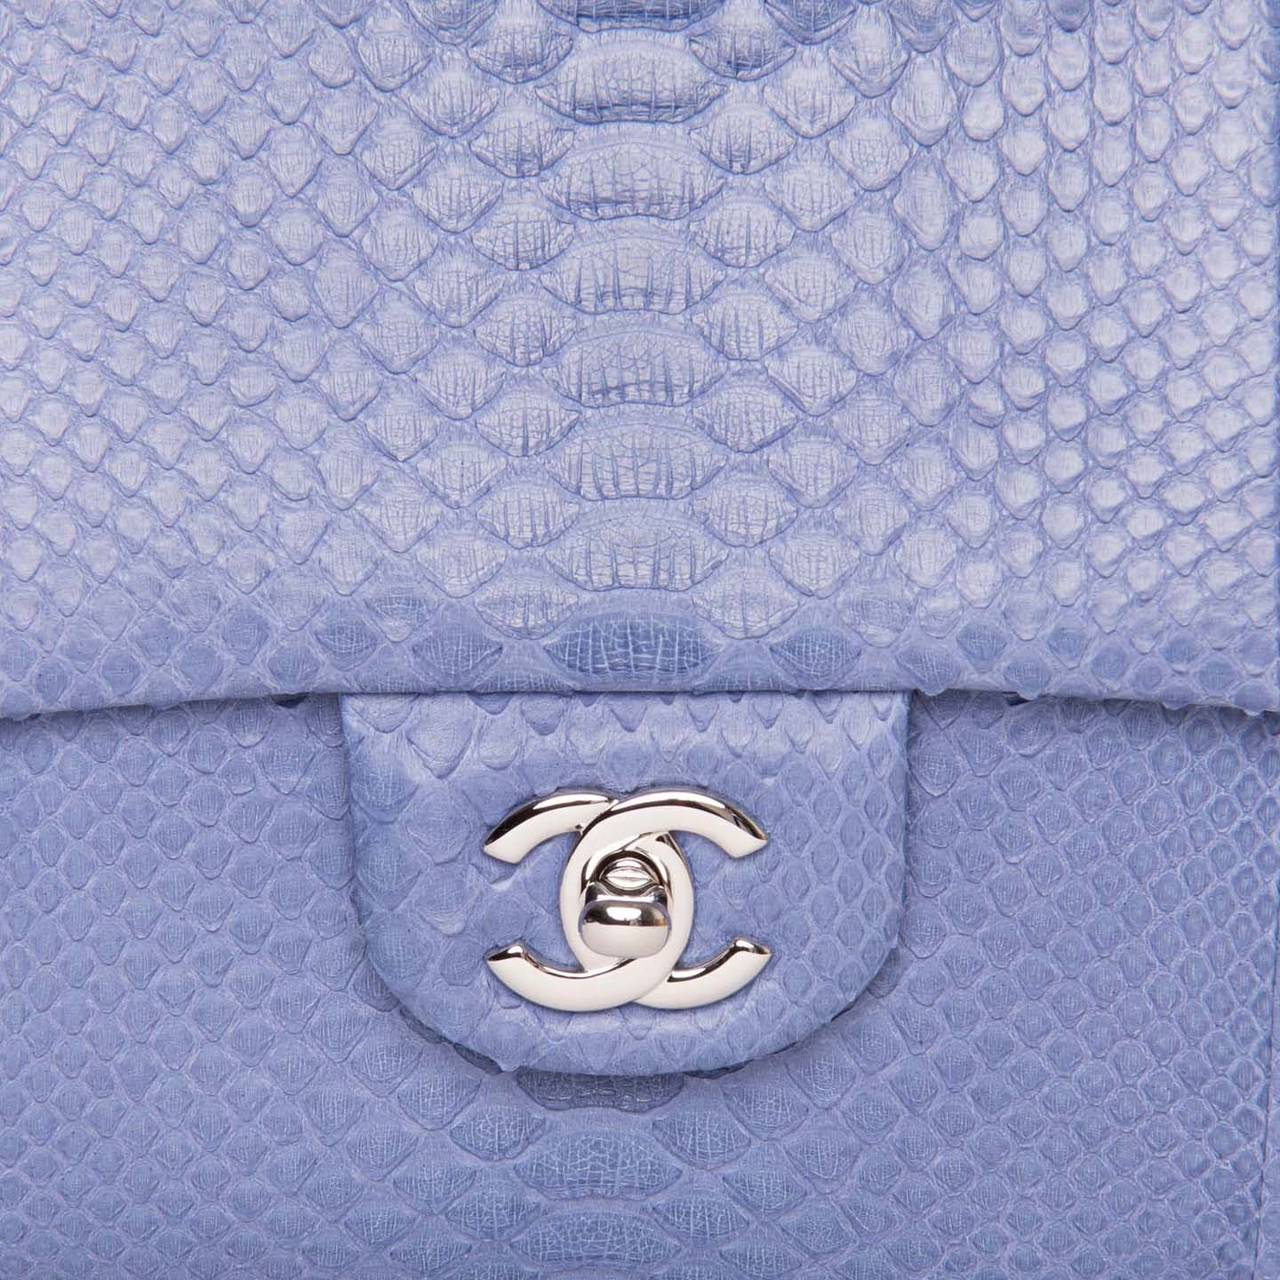 Chanel Periwinkle Python Small Clutch Bag With Strap For